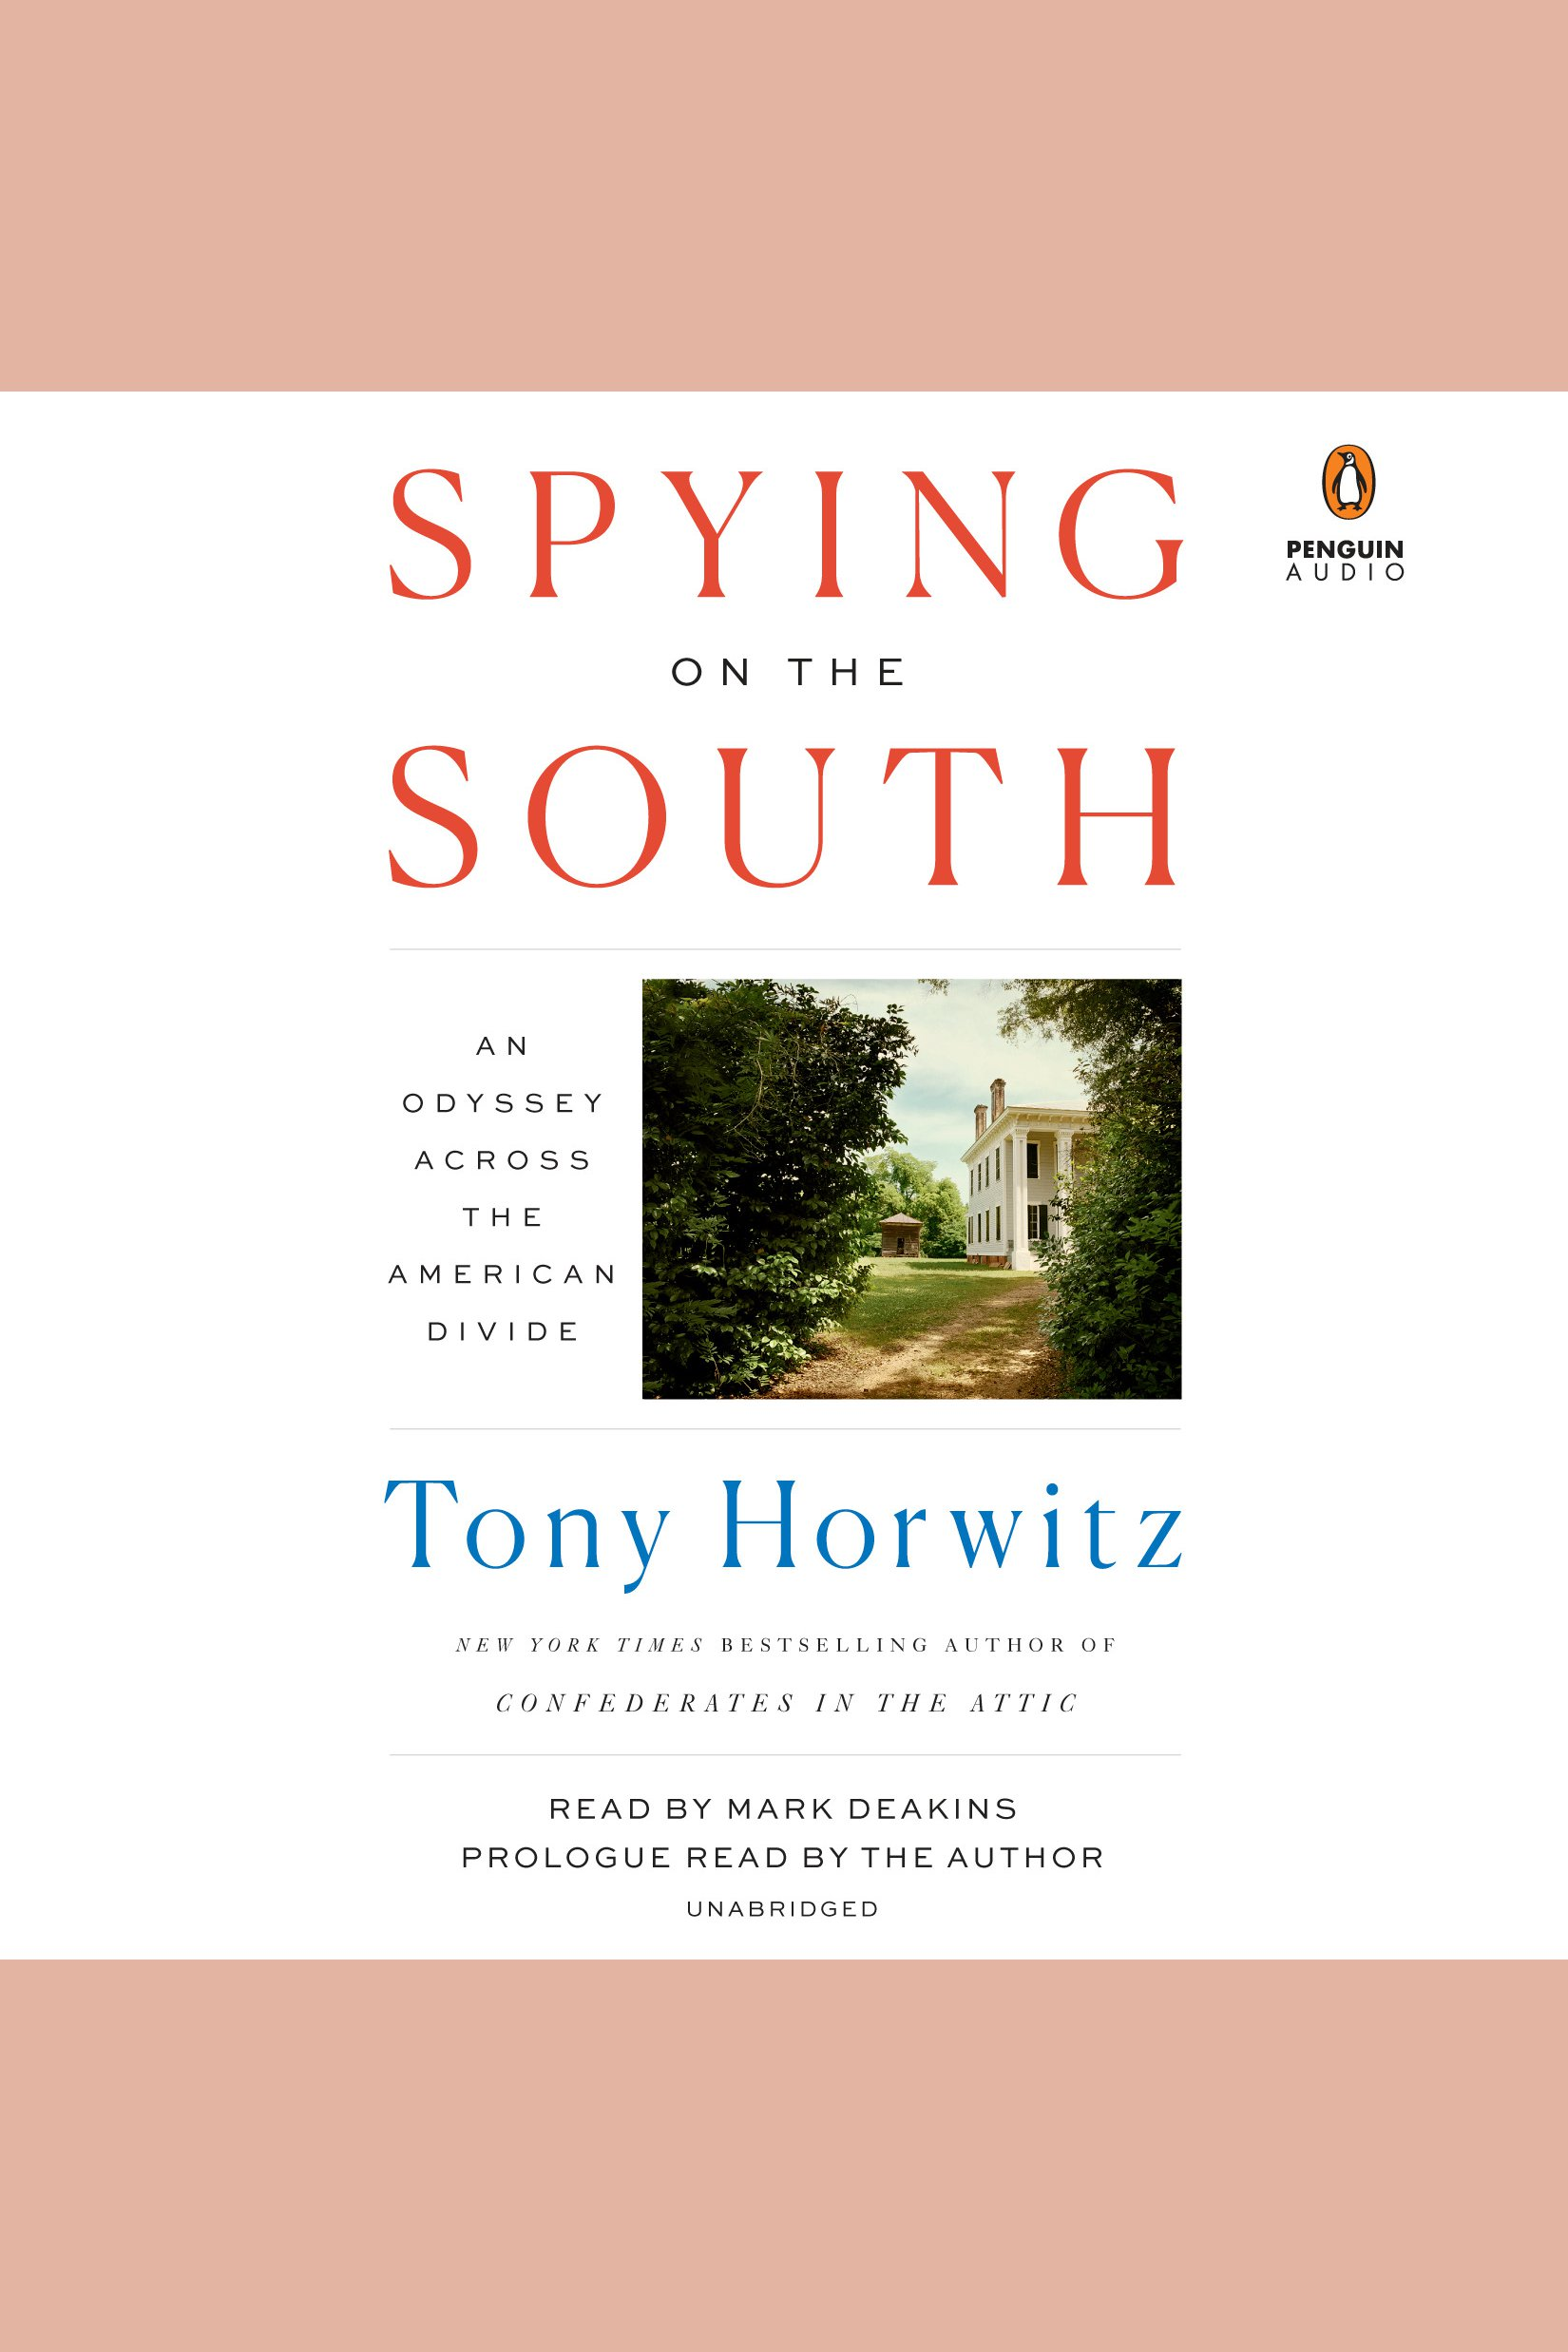 Spying on the South An Odyssey Across the American Divide